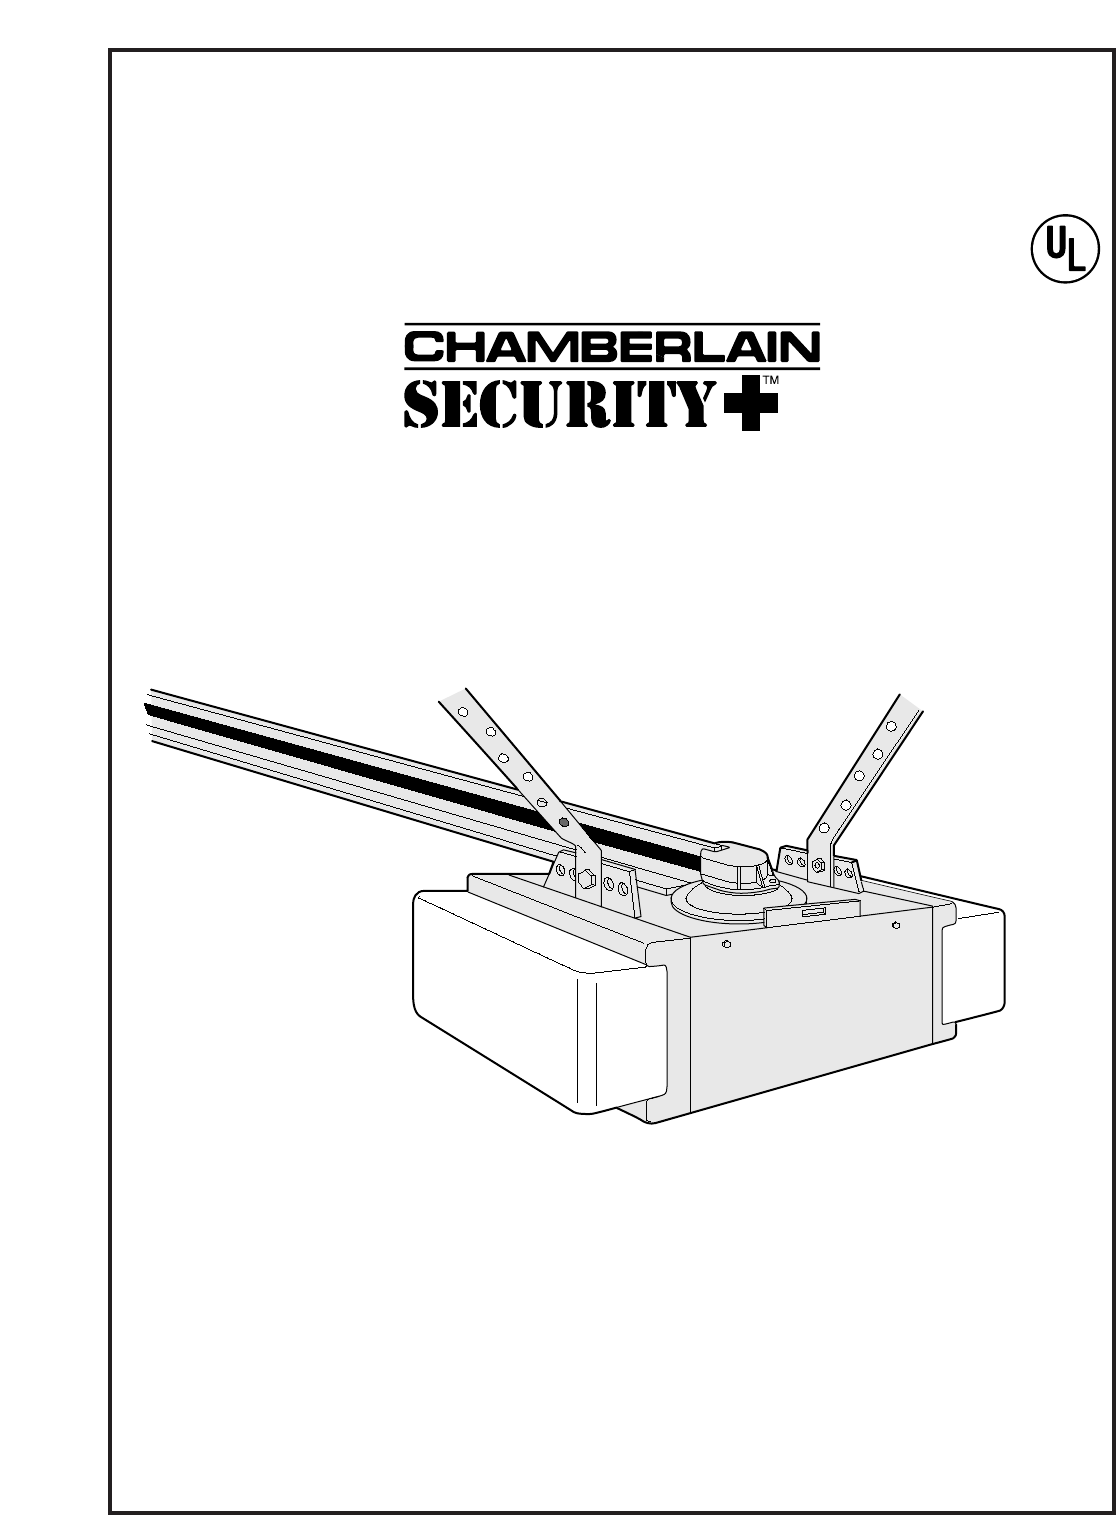 Chamberlain Garage Door Opener 8200 1/2 HP User Guide